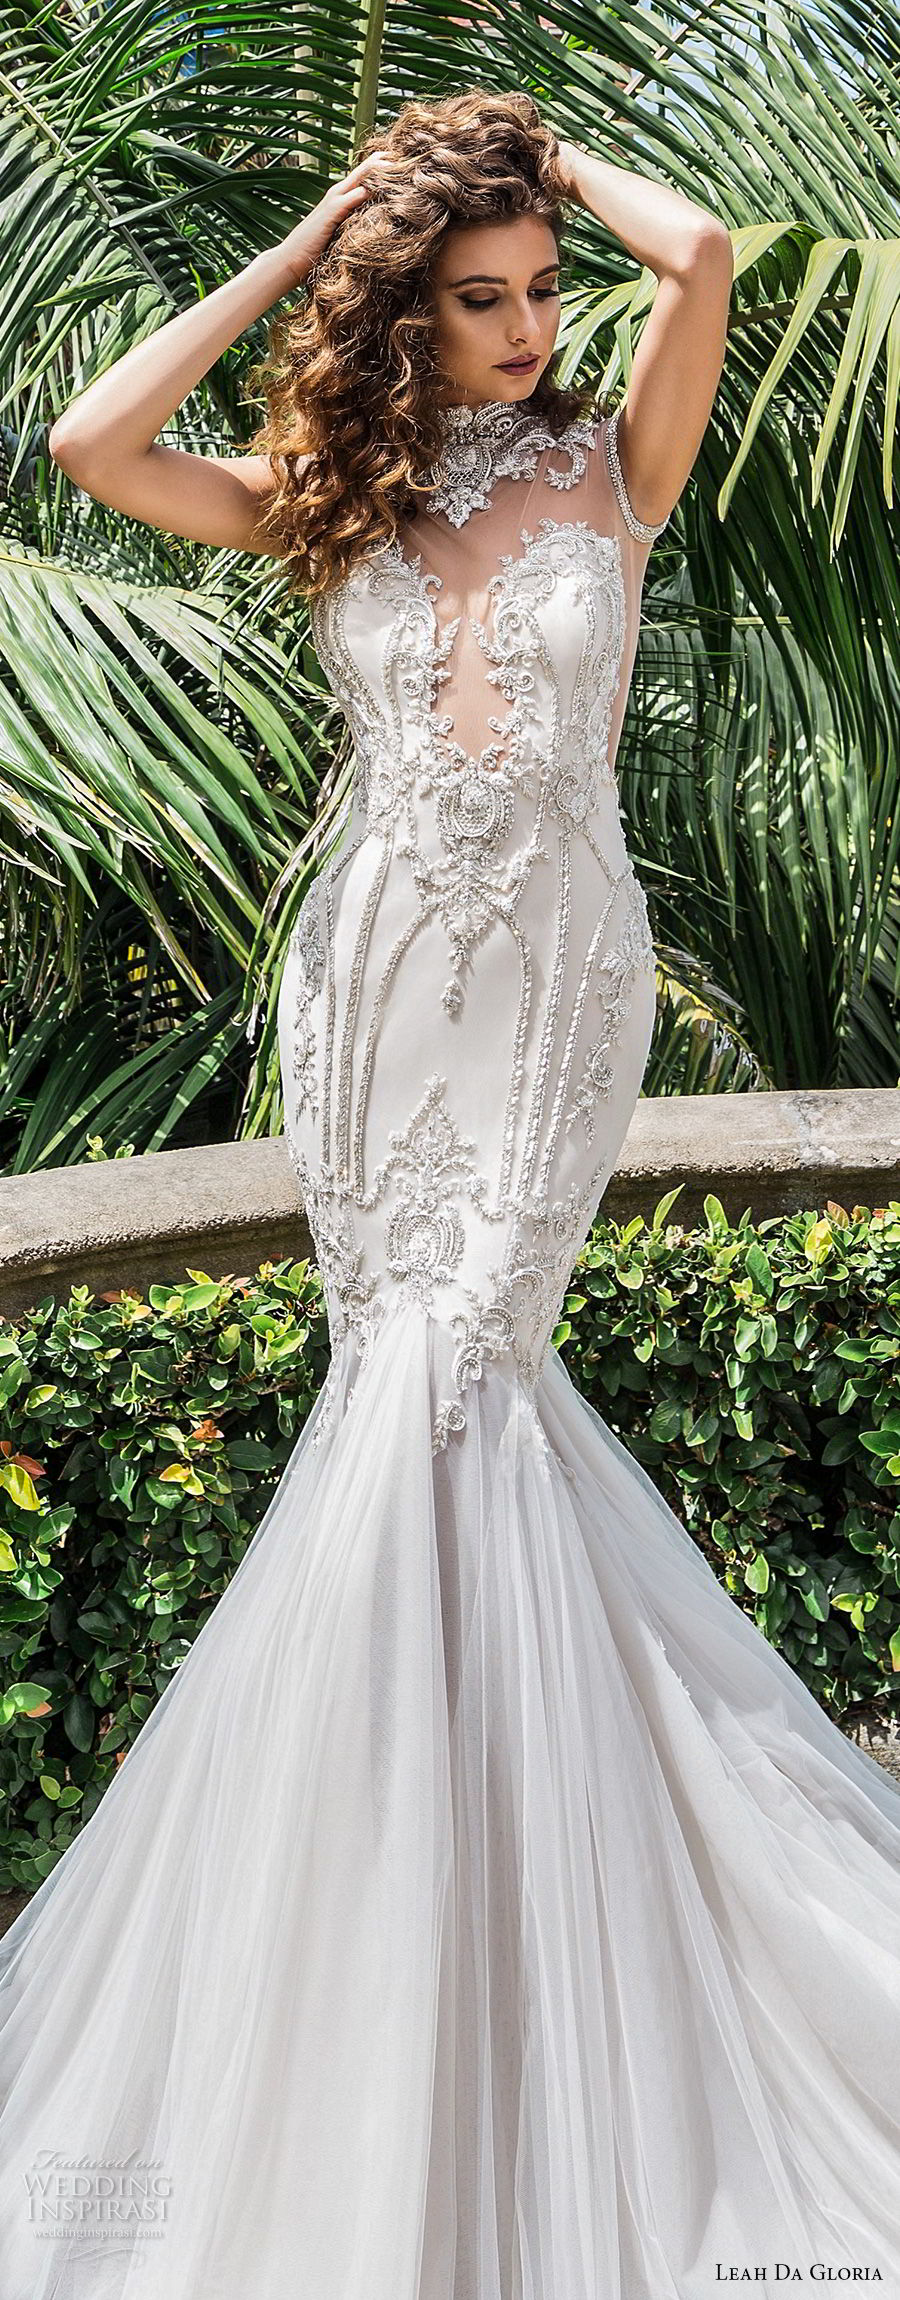 leah da gloria 2017 bridal sleeveless illusion high neck deep plunging sweetheart neckline heavily embellished bodice glamorous mermaid wedding dress long train (celine) zv